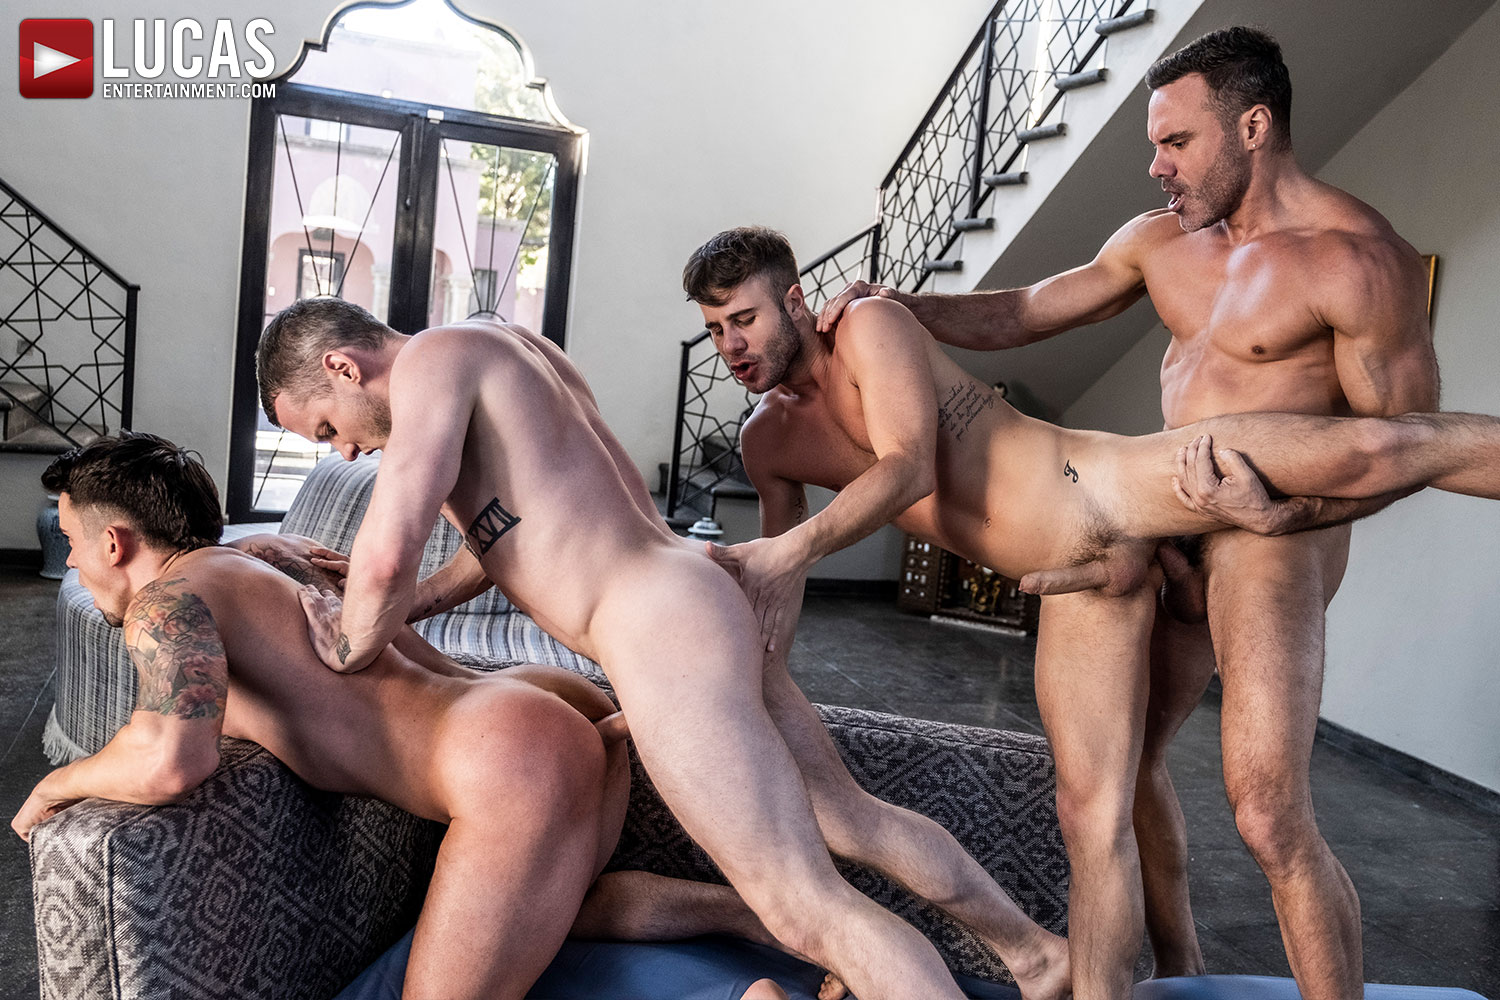 Join The Sweaty All-Star Orgy (Part 01) - Gay Movies - Lucas Entertainment